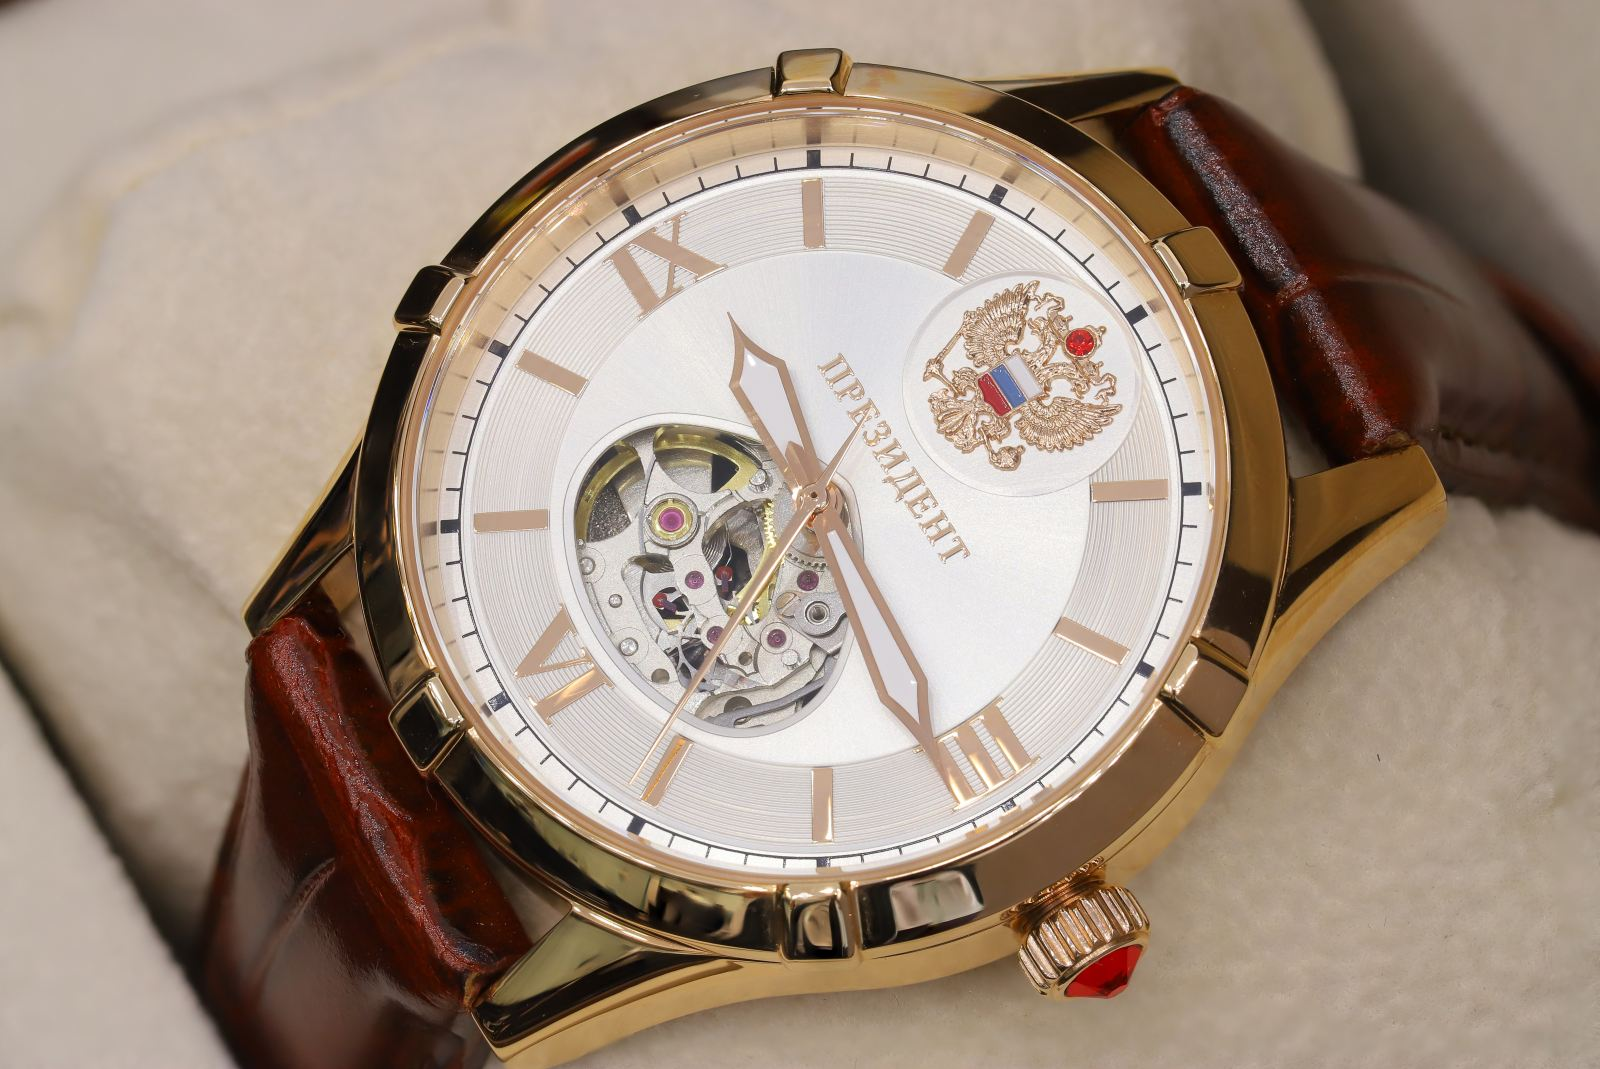 Russian time 1930 Open heart White